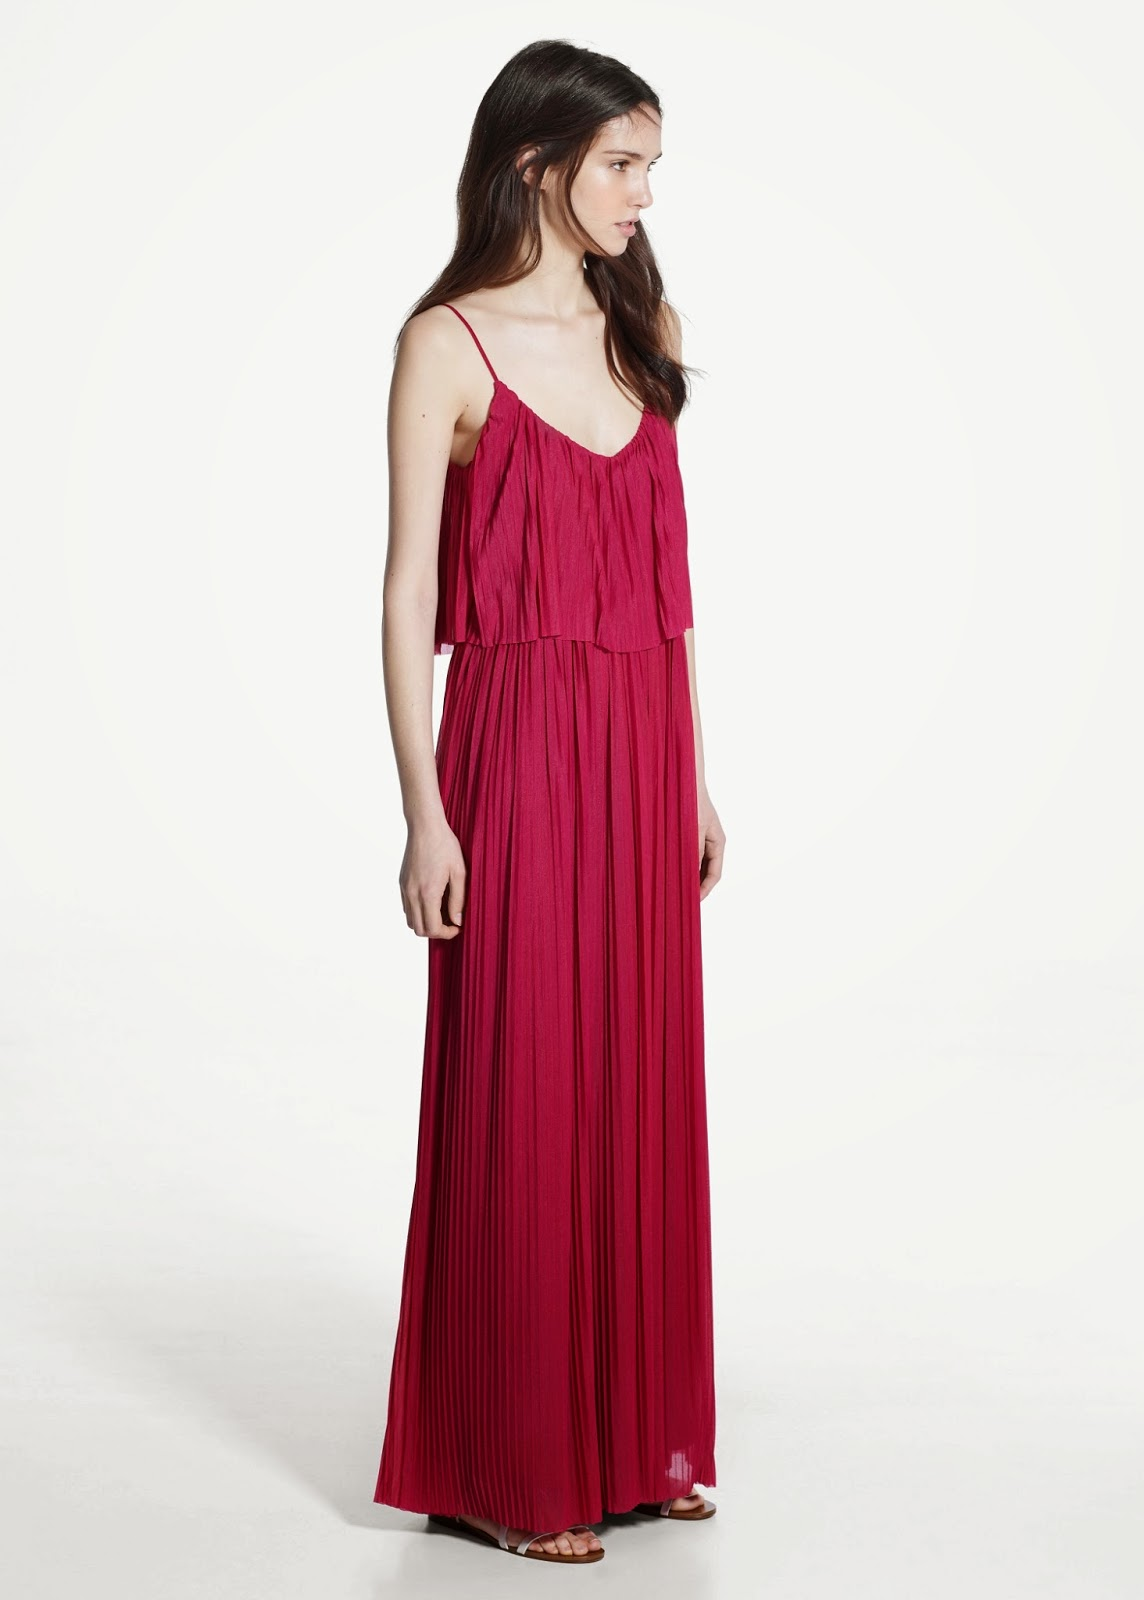 mango red maxi dress